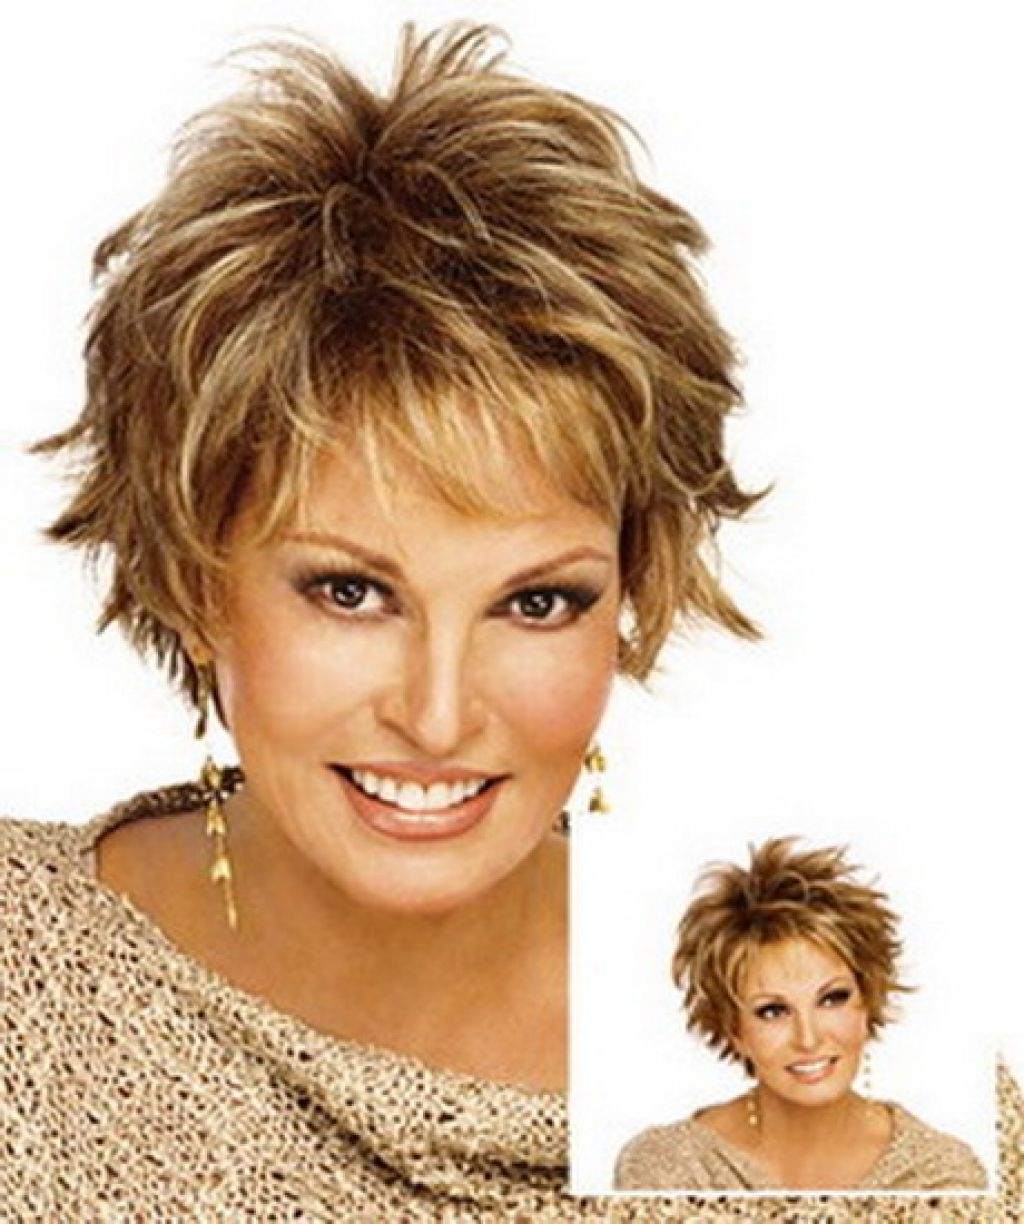 Short Shaggy Haircuts For Women Over 50 – Popular Long Hairstyle Idea For Current Shaggy Hairstyles For Over  (View 14 of 15)